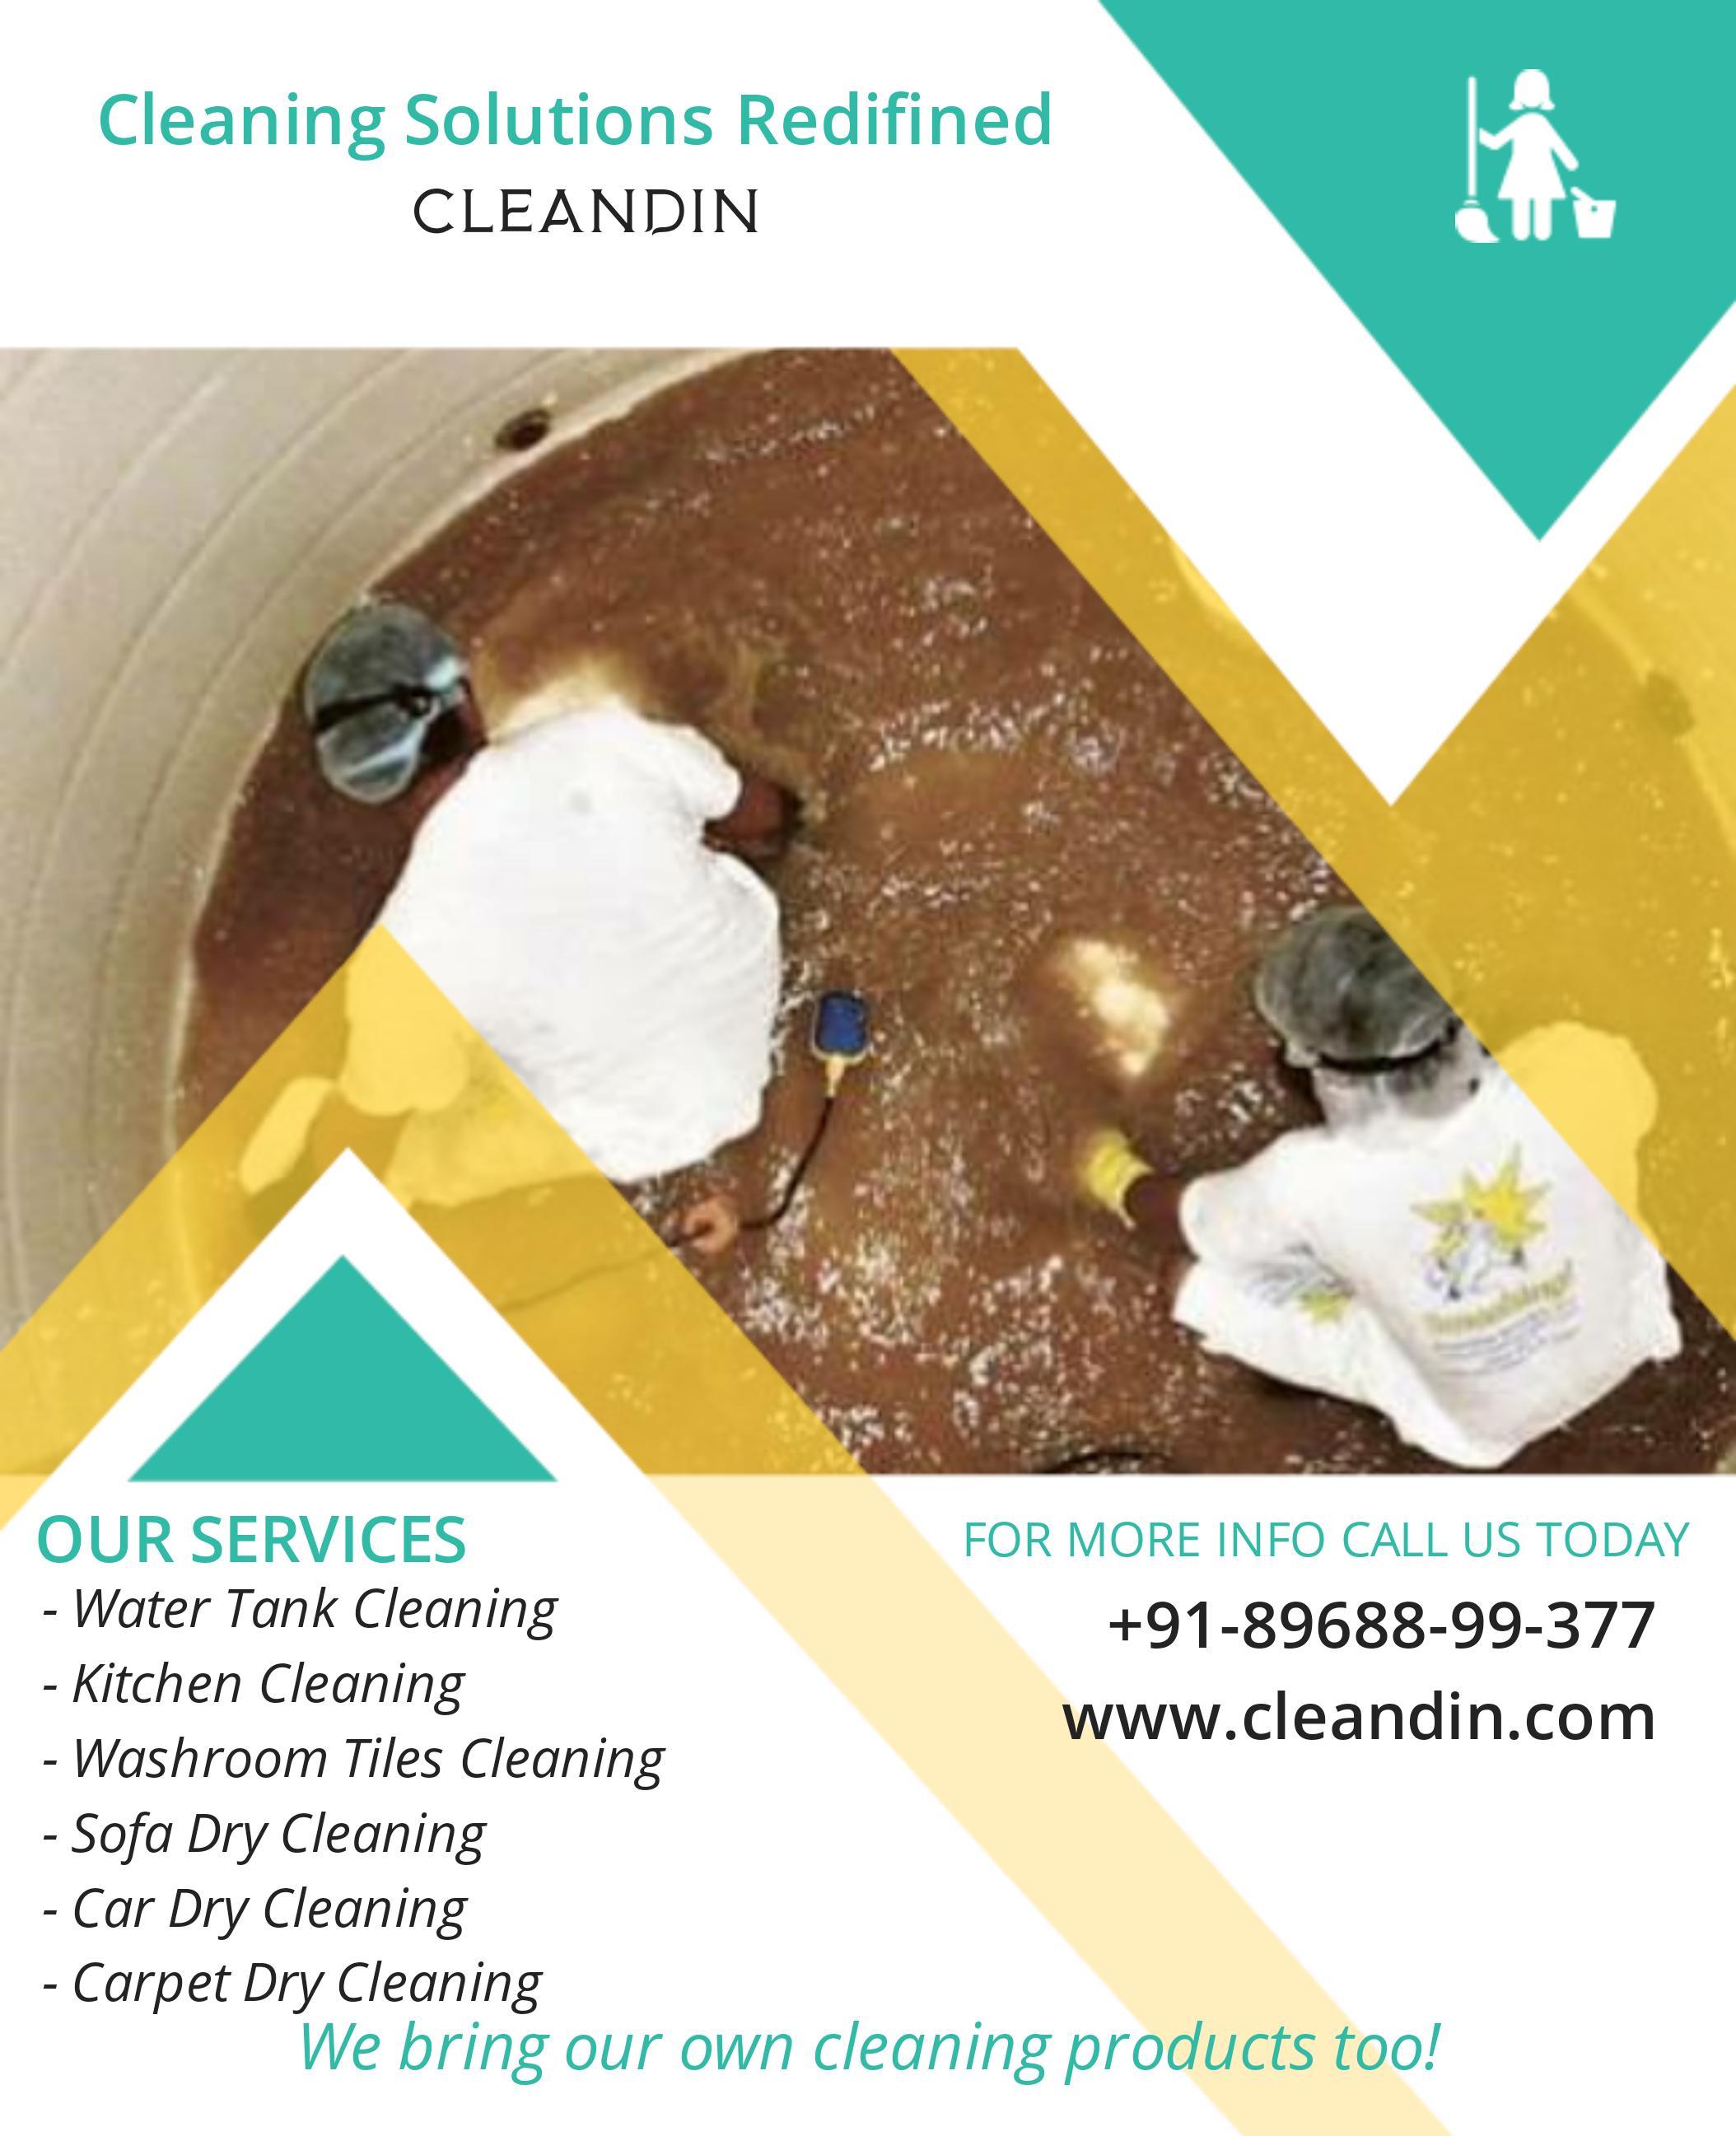 CleanDin Water Tank Cleaning Services